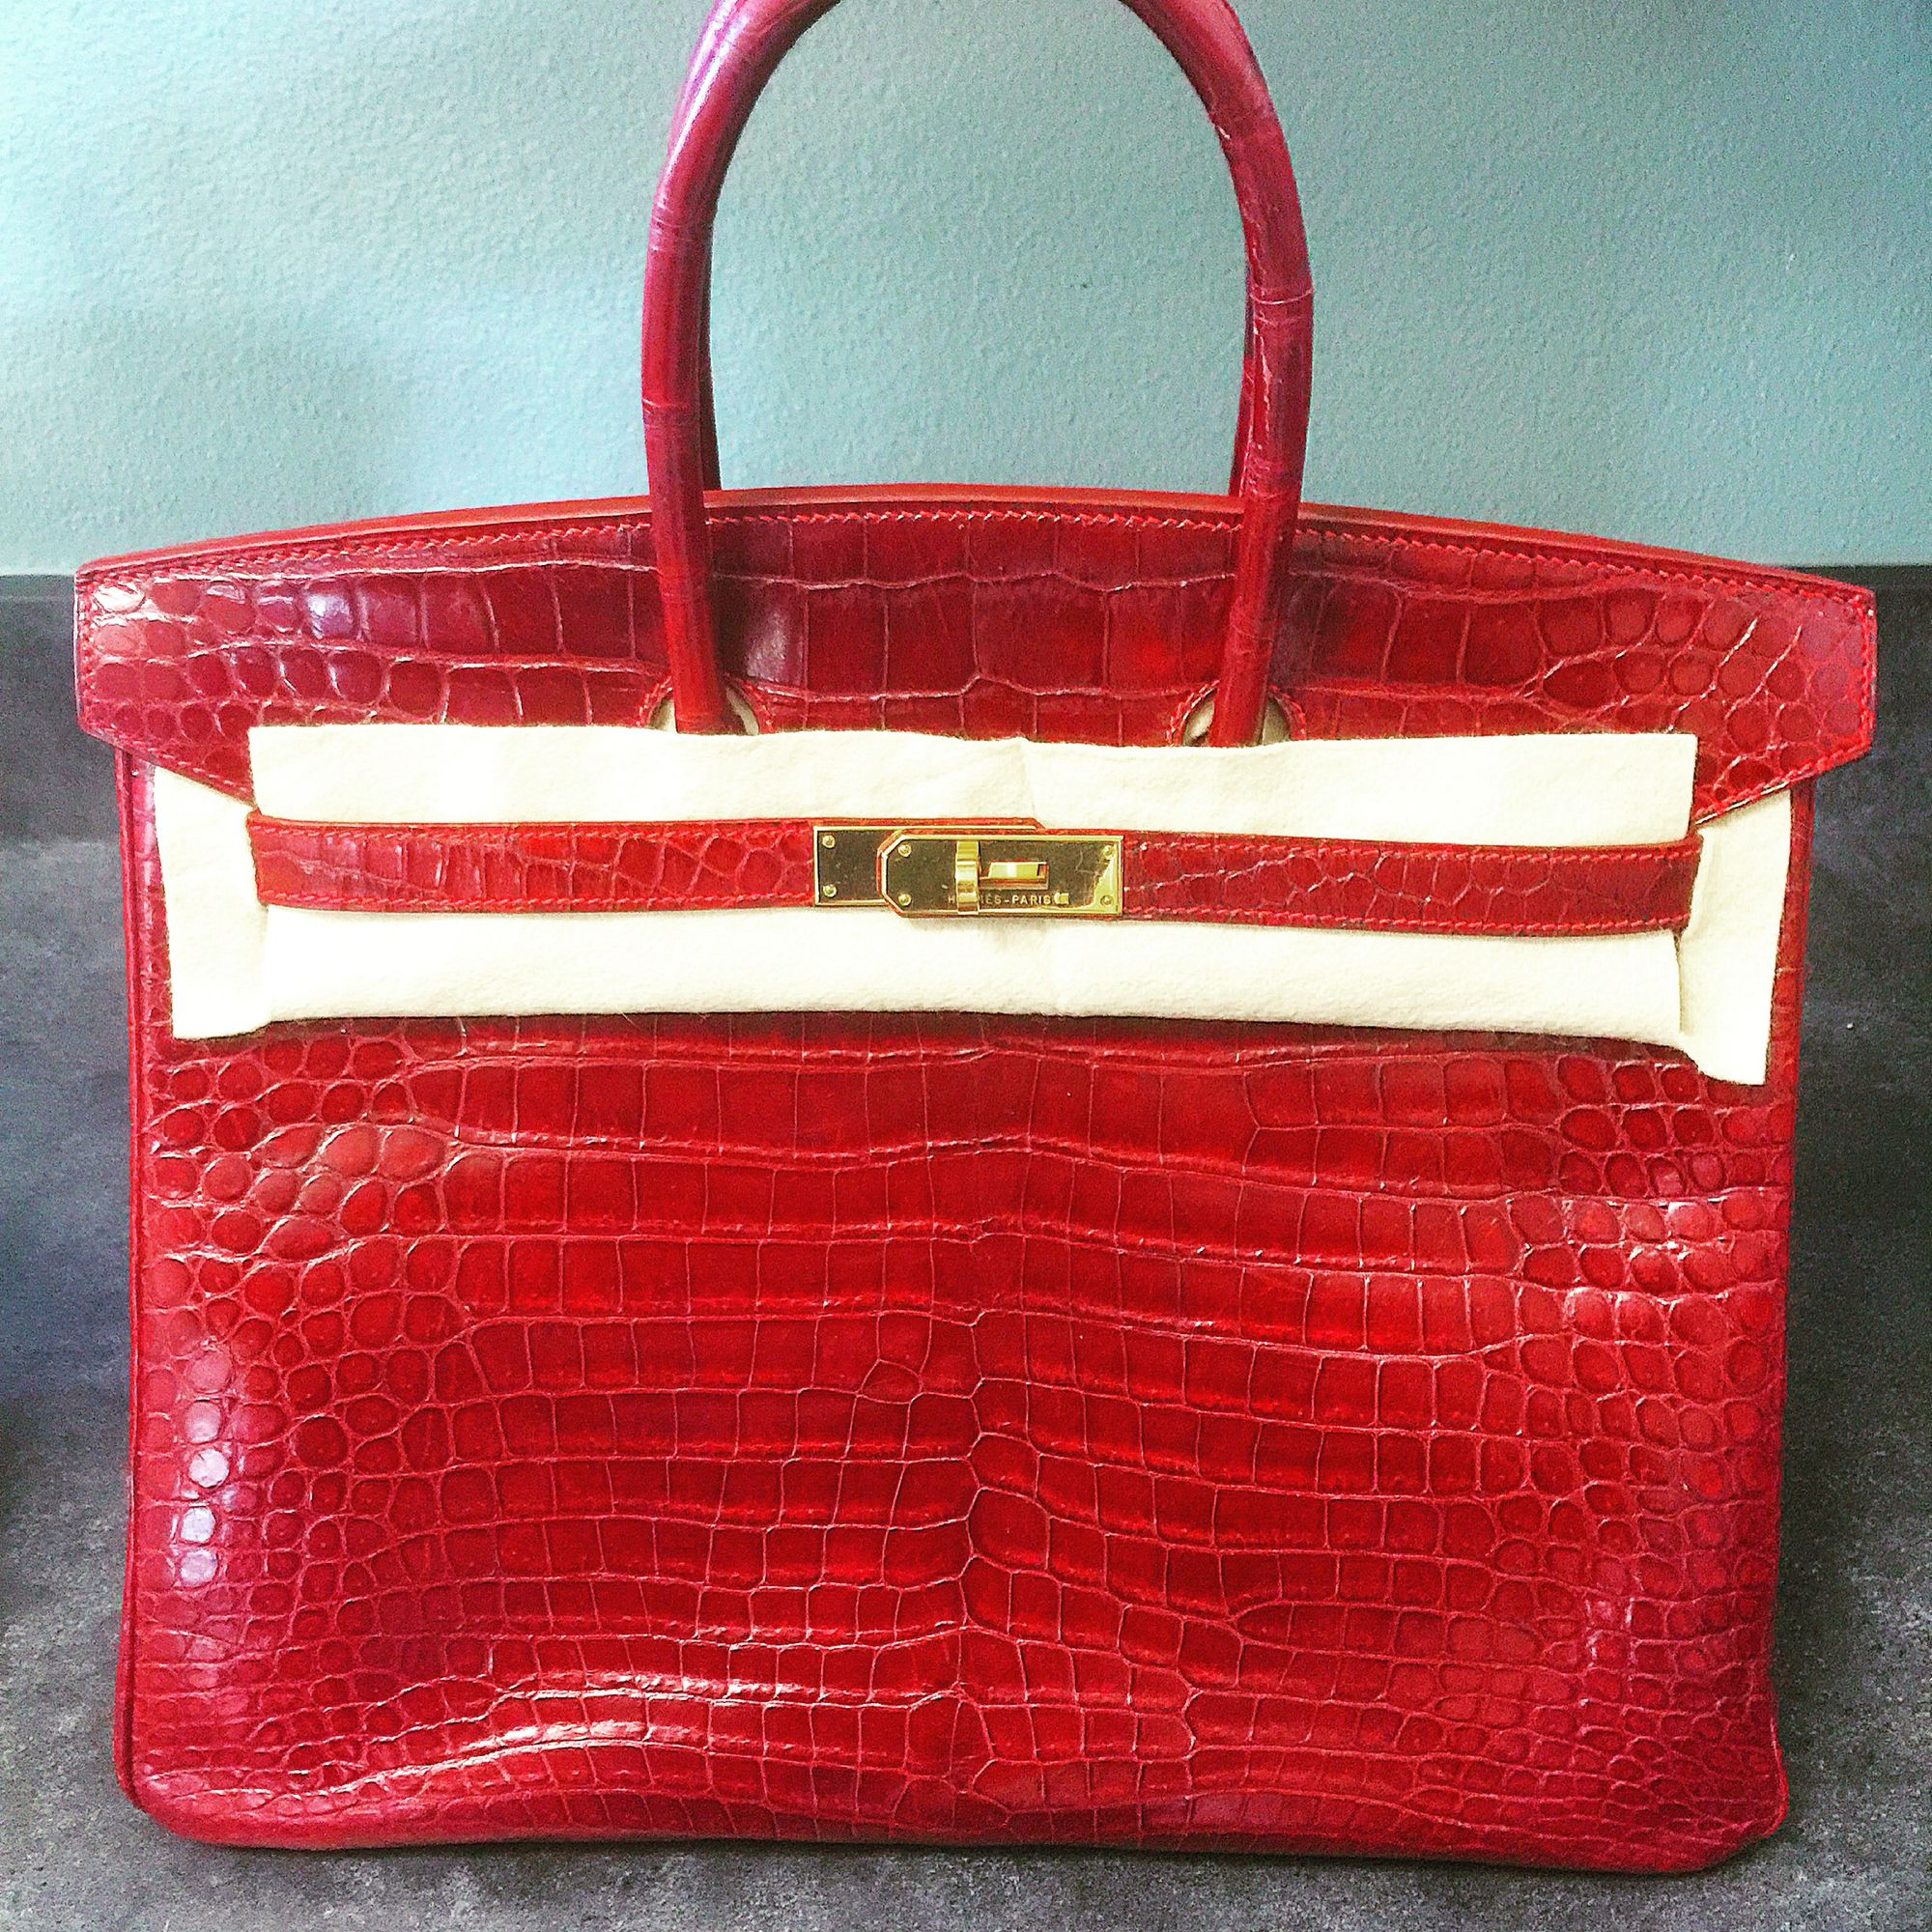 Sell Your Hermes Birkin Bags Online at www.LuxuryBuyers.com - Free Quotes  and Free Shipping! f593c2e445